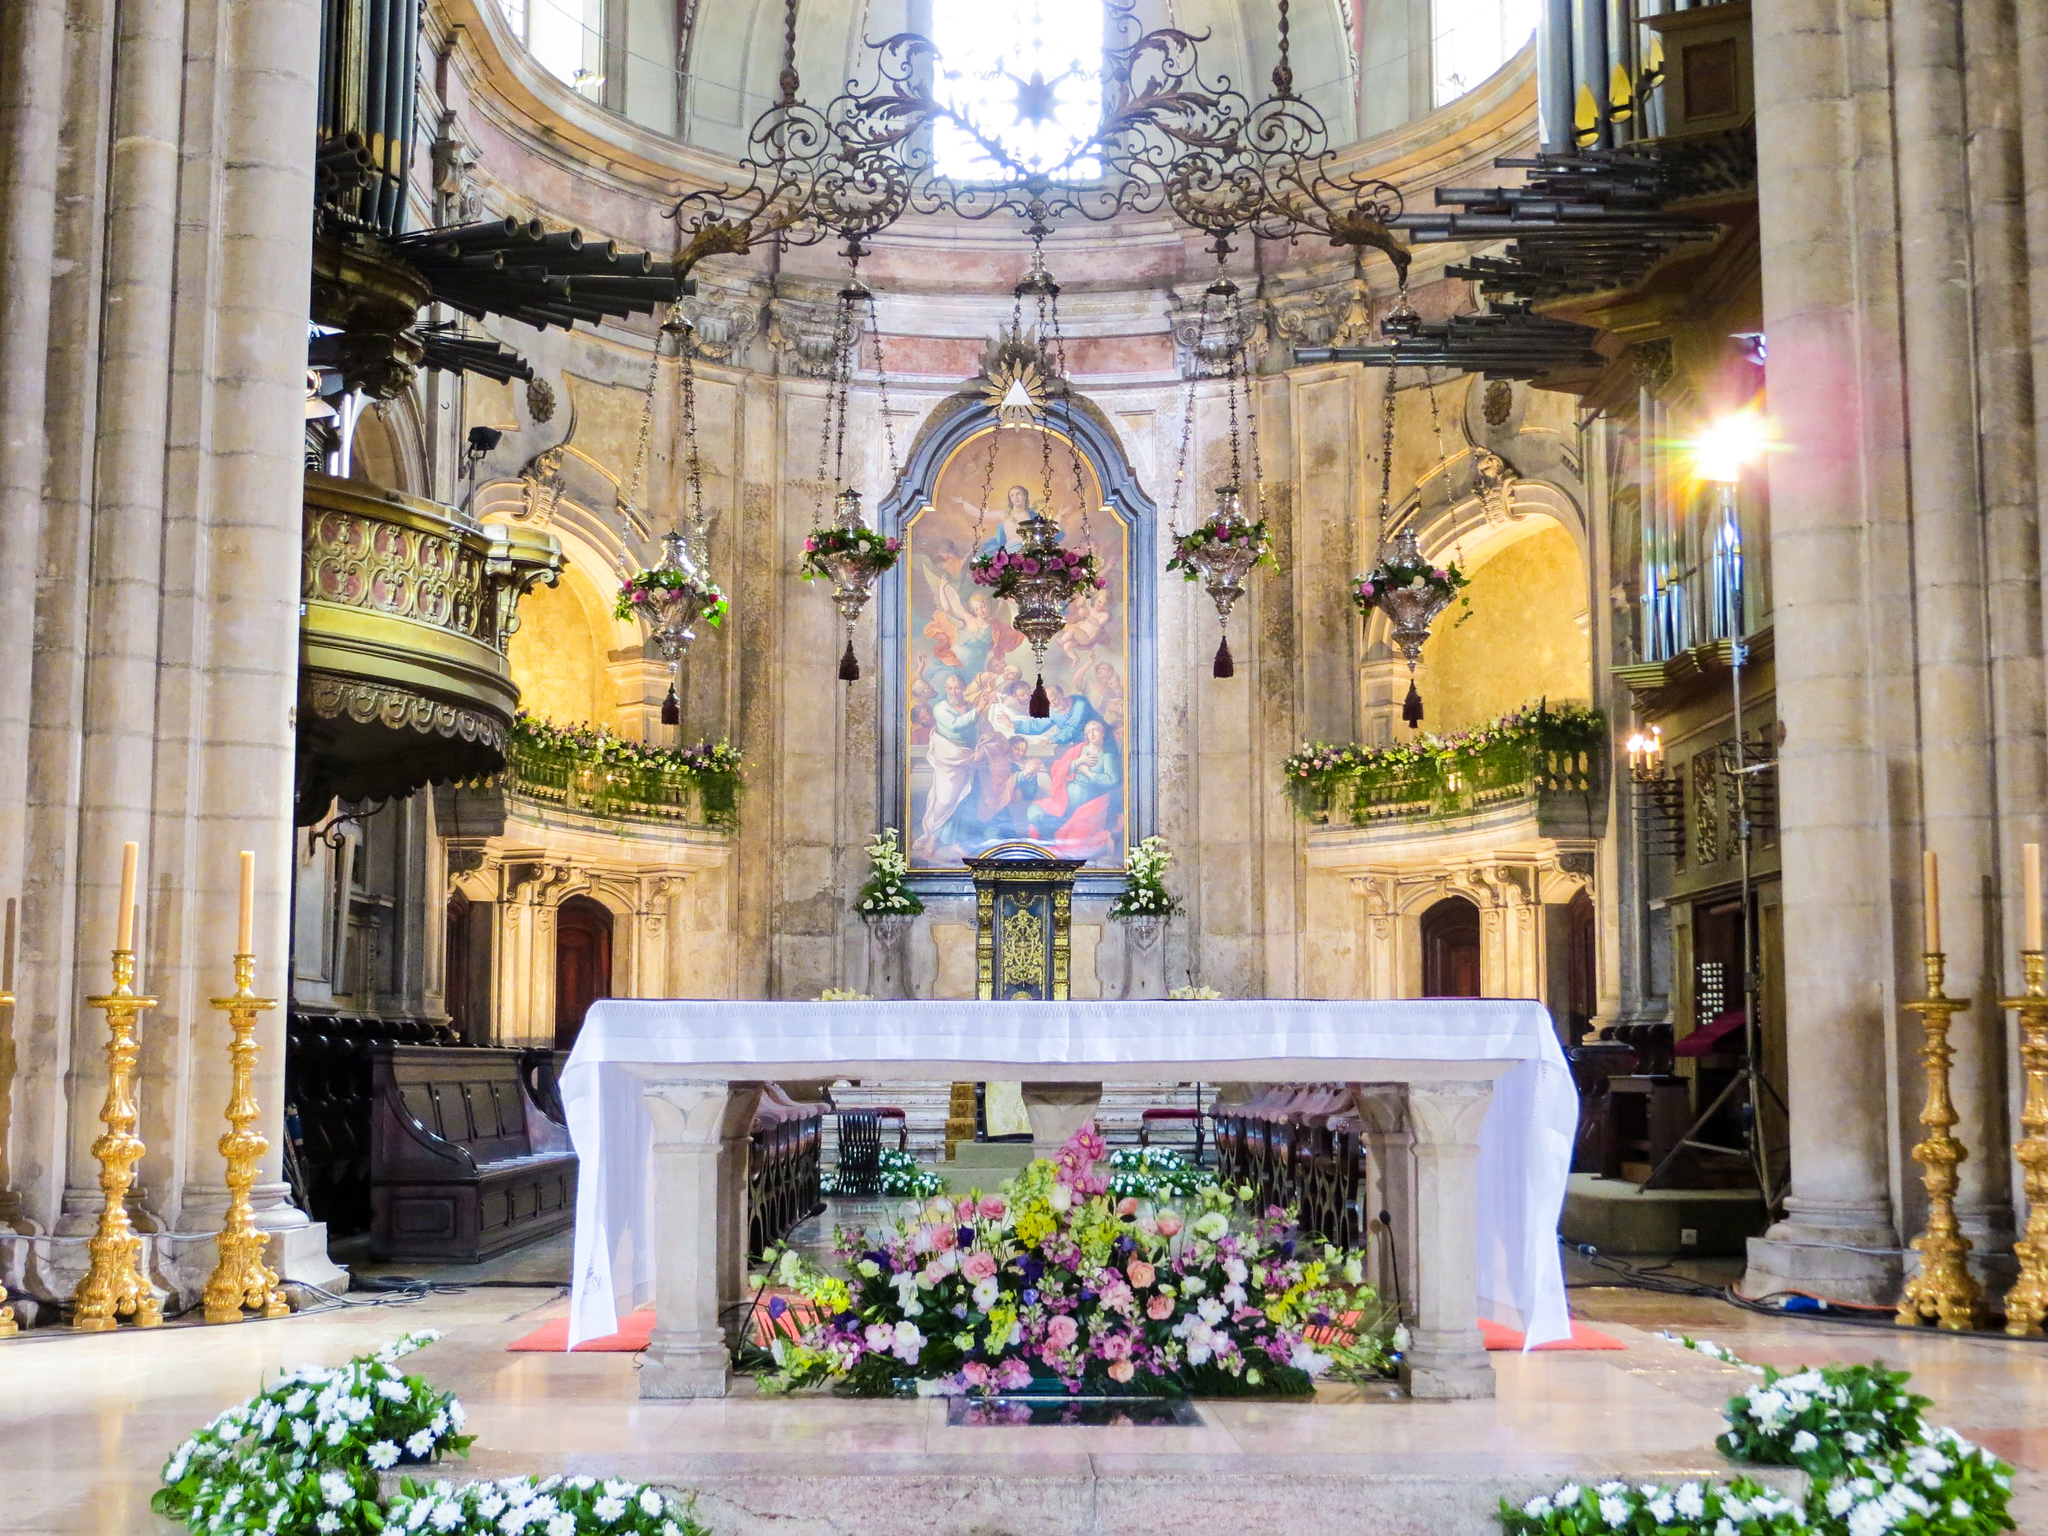 not sure what to do in lisbon for 2 days? check out the inside of churches